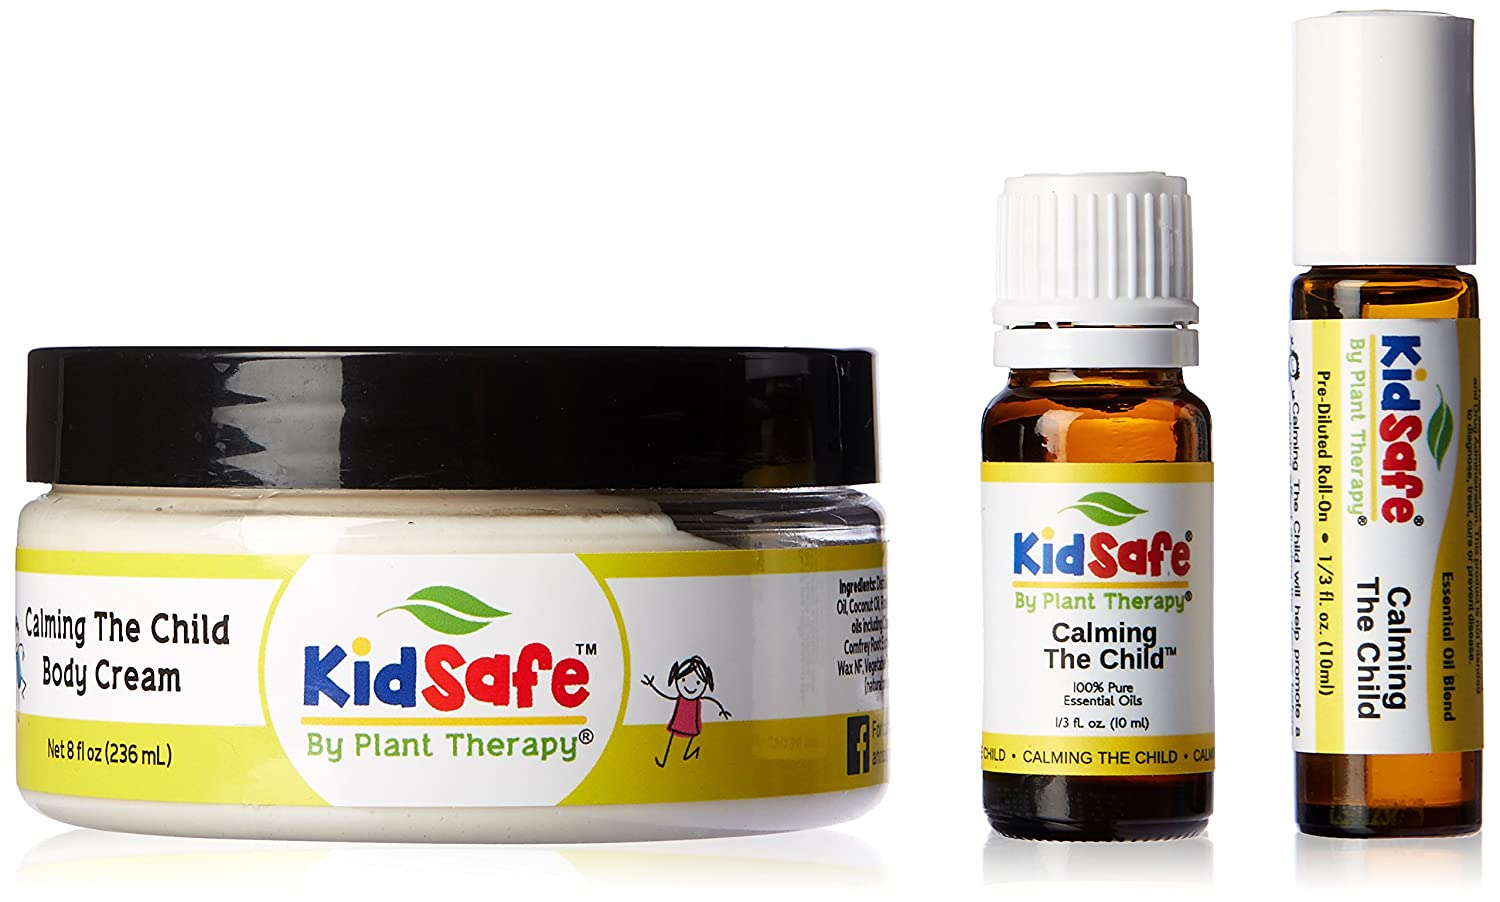 Plant Therapy Calming the Child Set. Made from 100% Pure, Undiluted, Therapeutic Grade Essential Oils. Plant Therapy Inc